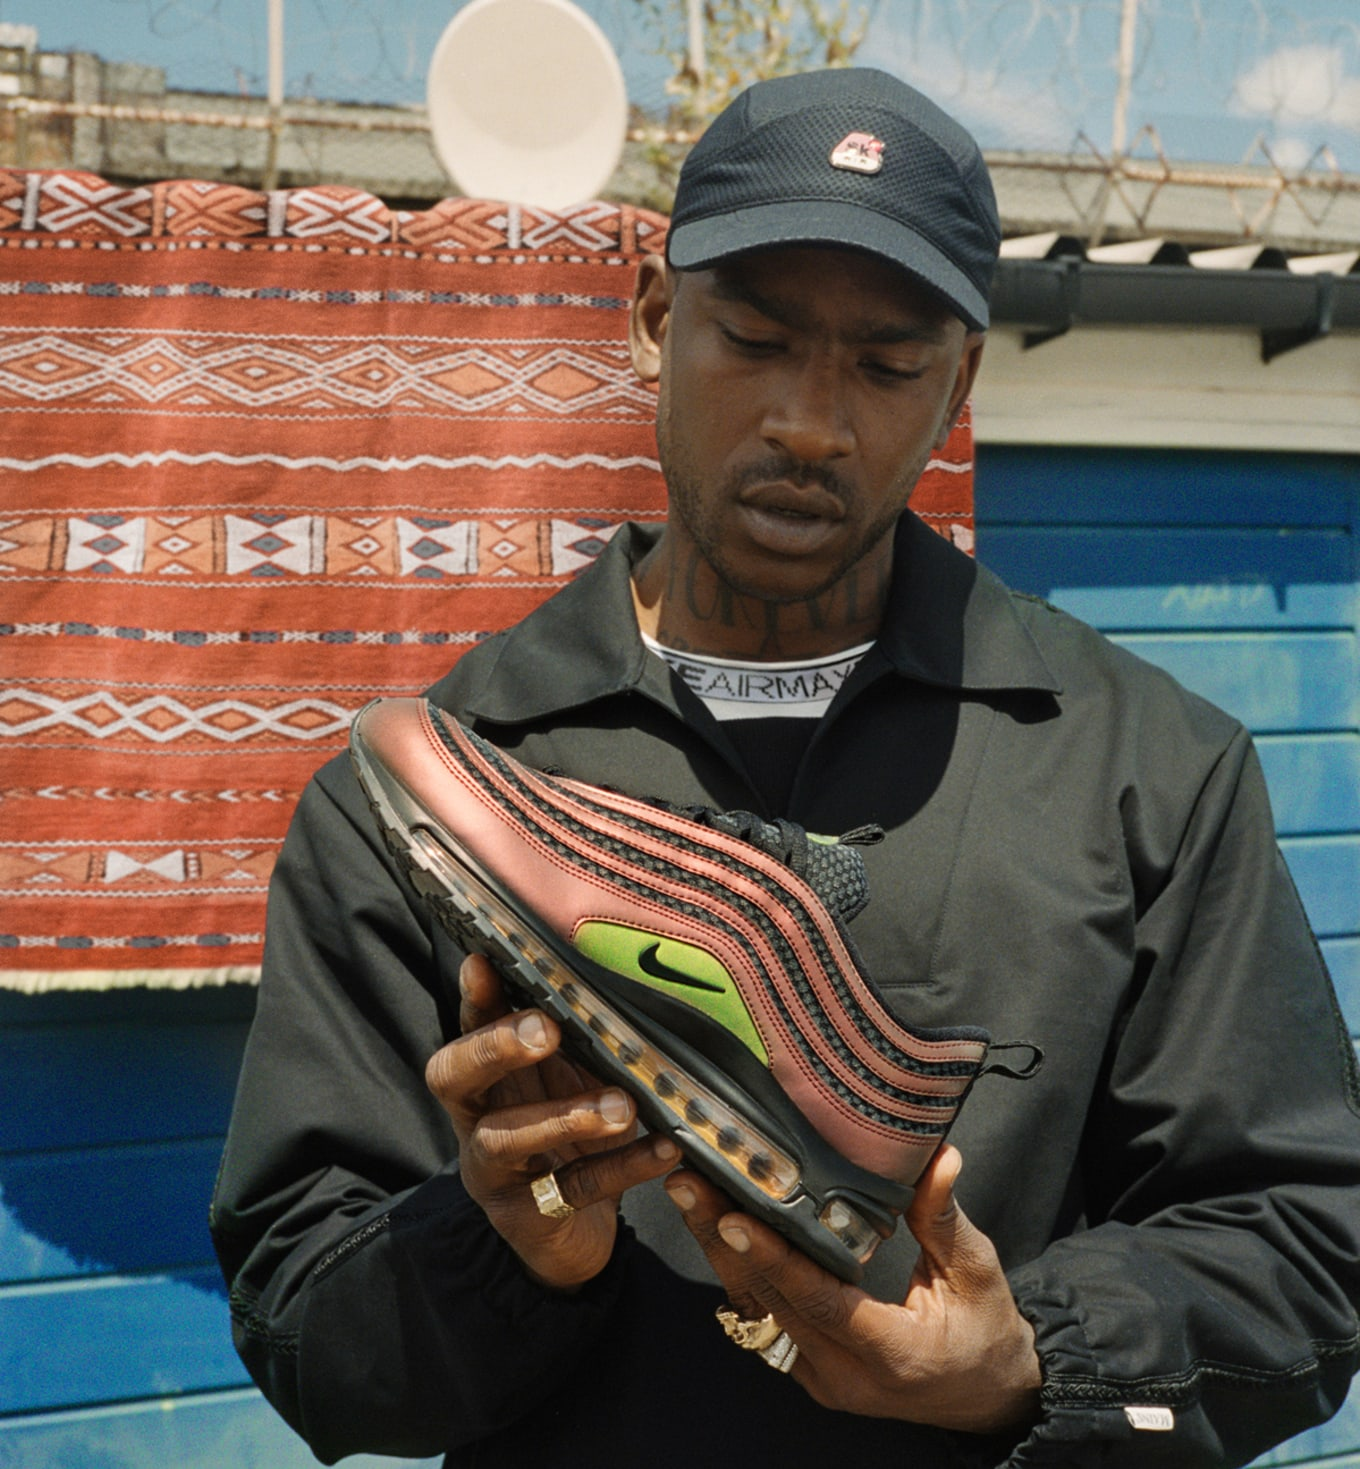 Skepta Nike Air Max 97 Release Date | Sole Collector